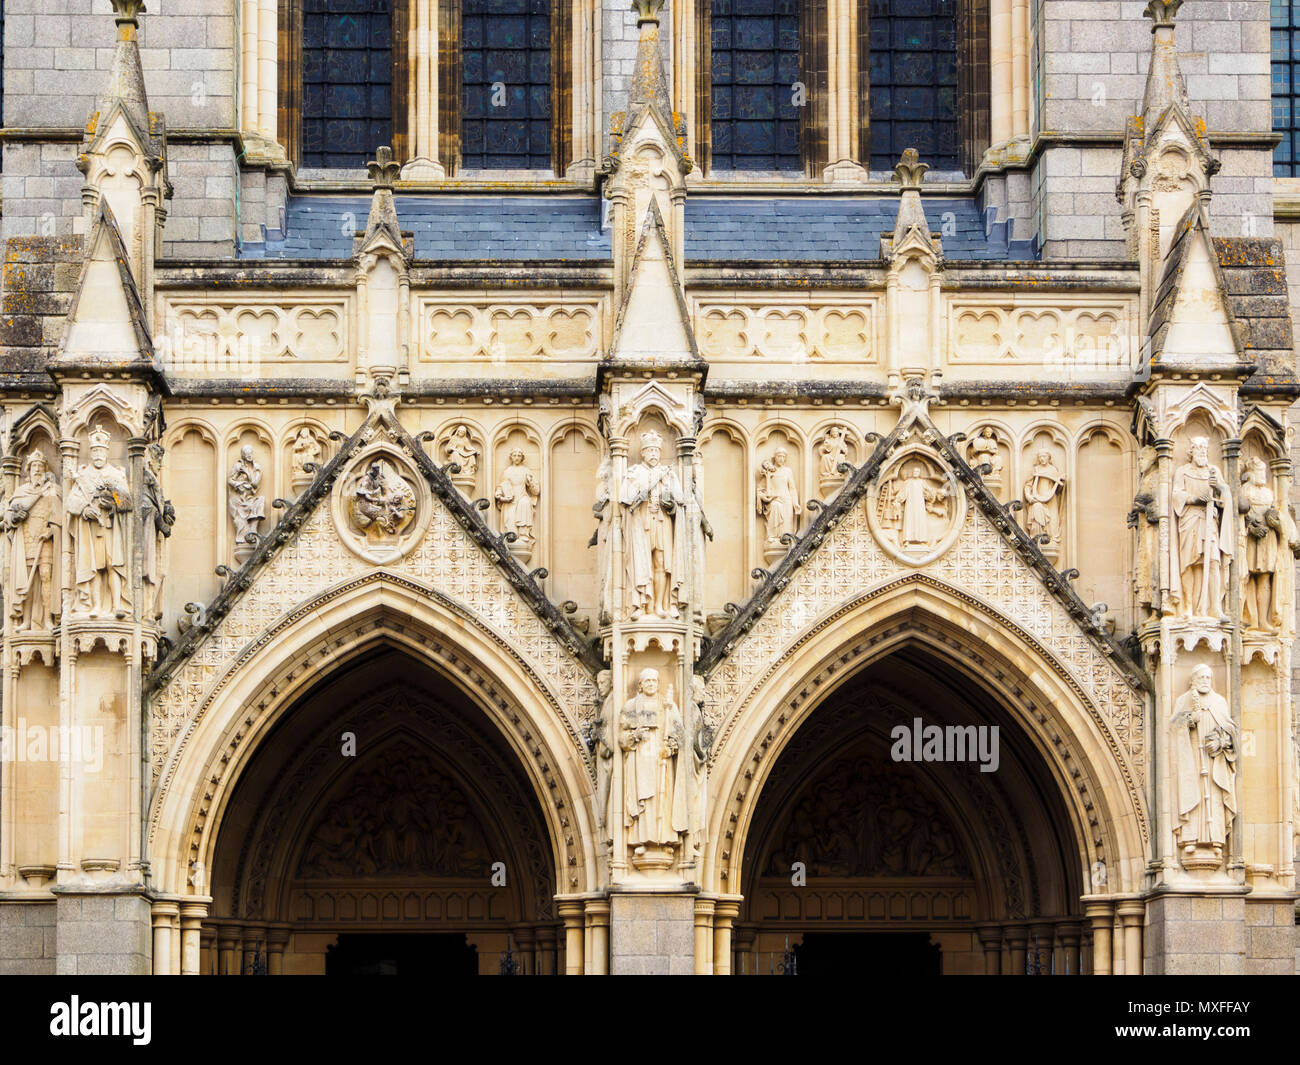 Elaborate carving and statuary on the front facade of the Victorian Truro Cathedral, Cornwall, UK - Stock Image